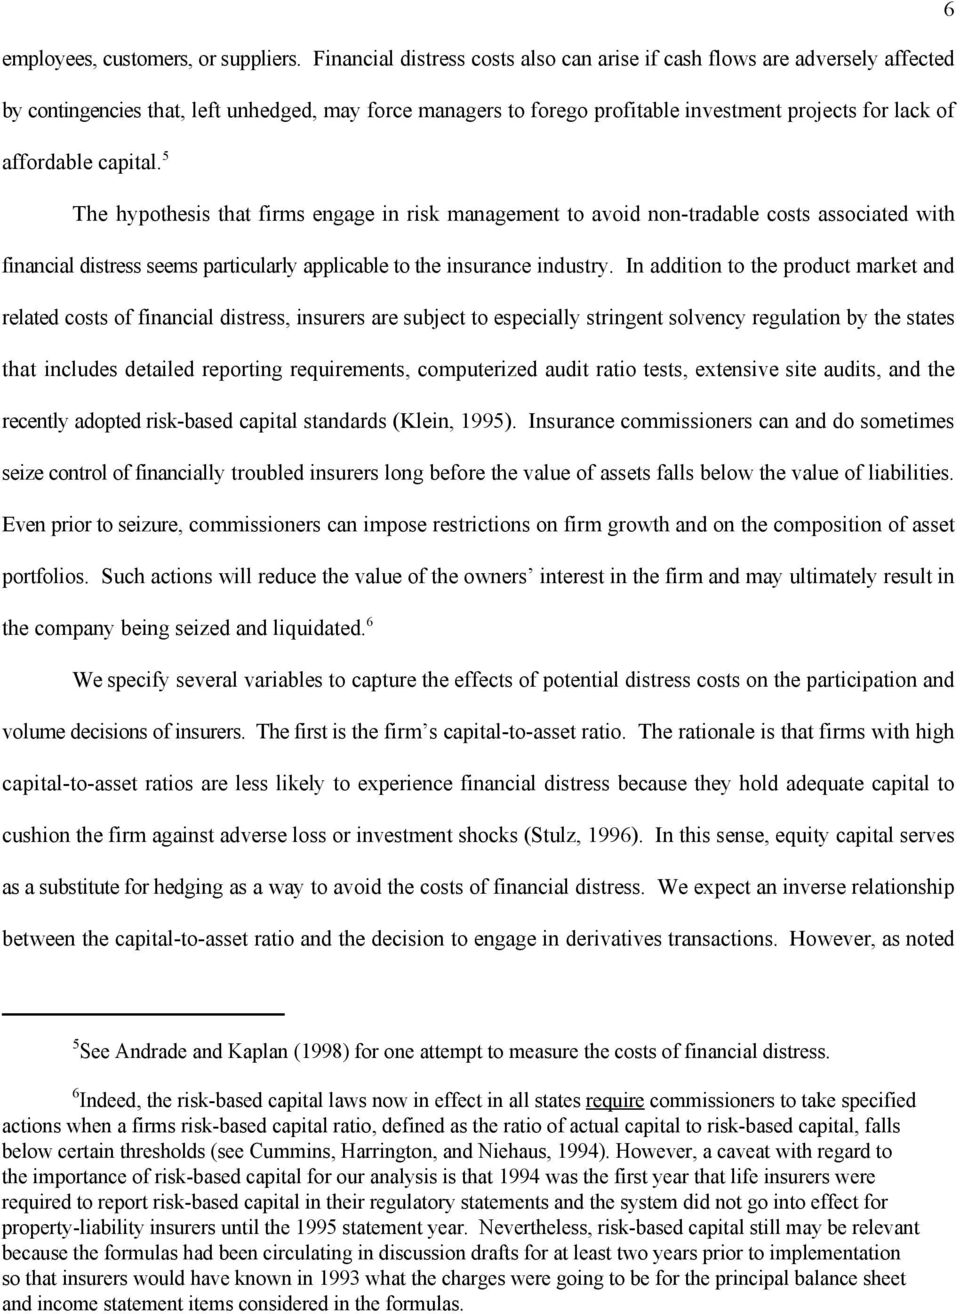 capital. The hypothesis that firms engage in risk management to avoid non-tradable costs associated with financial distress seems particularly applicable to the insurance industry.